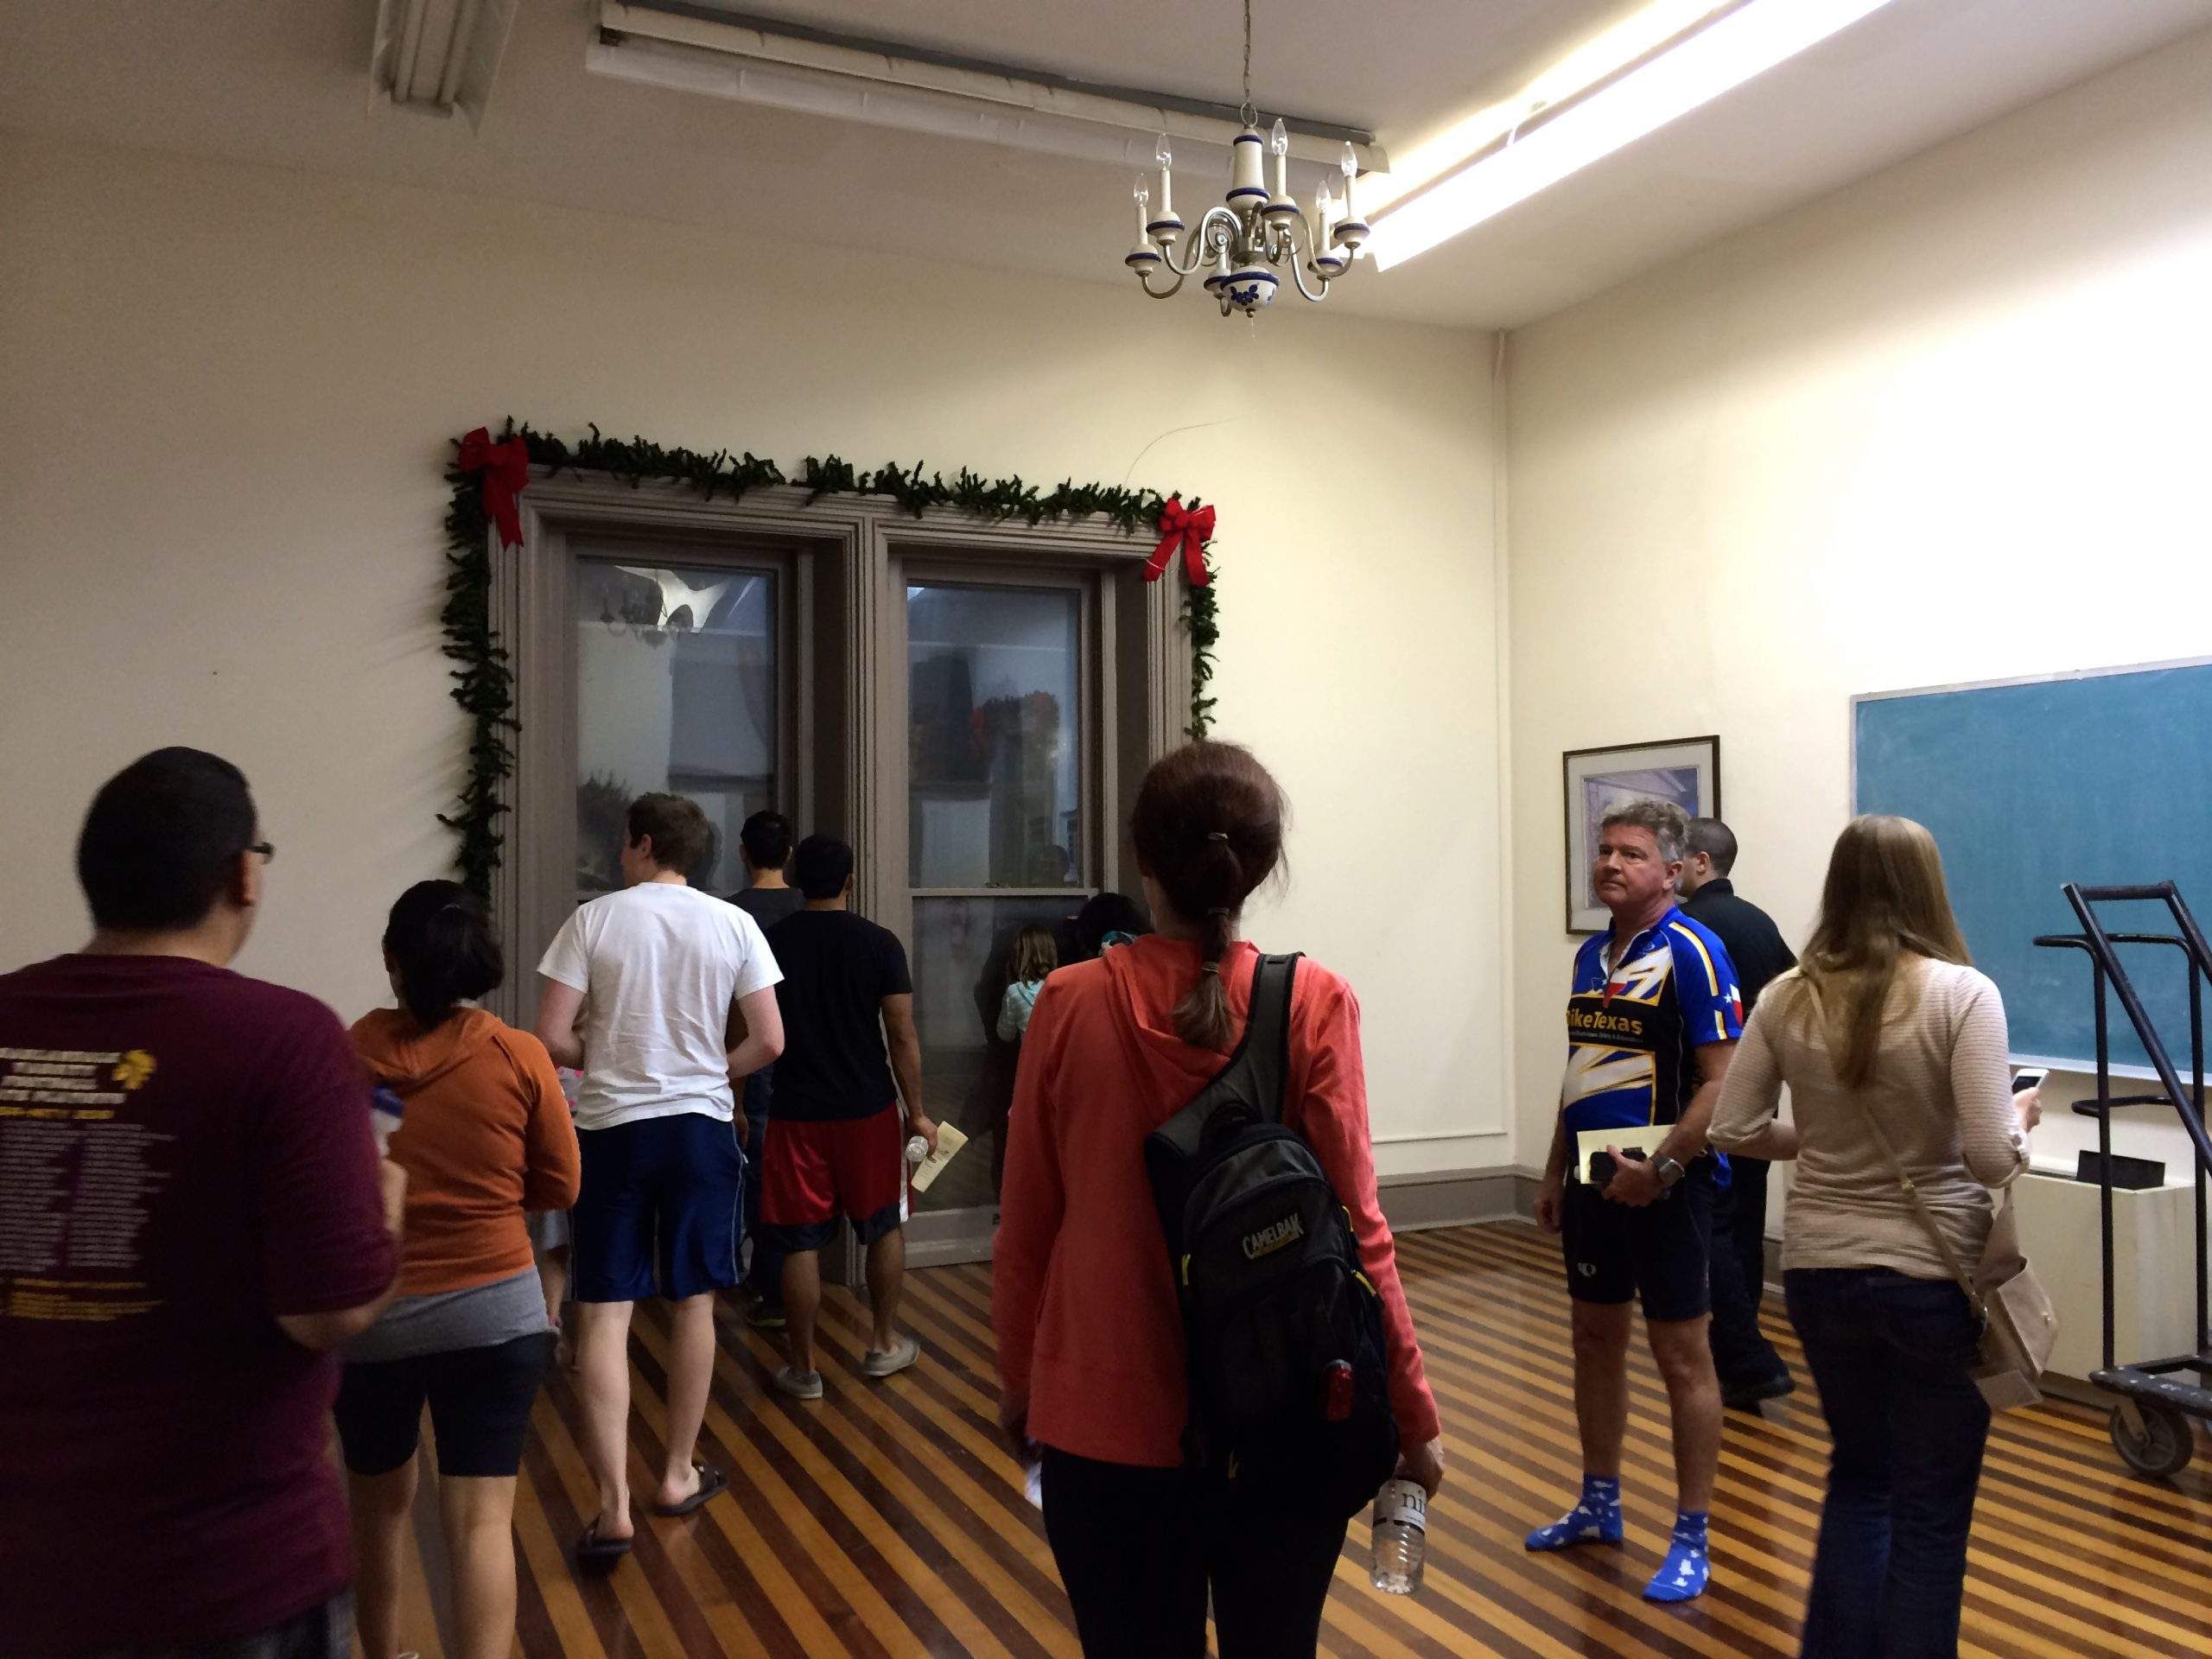 Our group tours one of the many spacious rooms inside The Commanders House. Photo by Jaime Solis